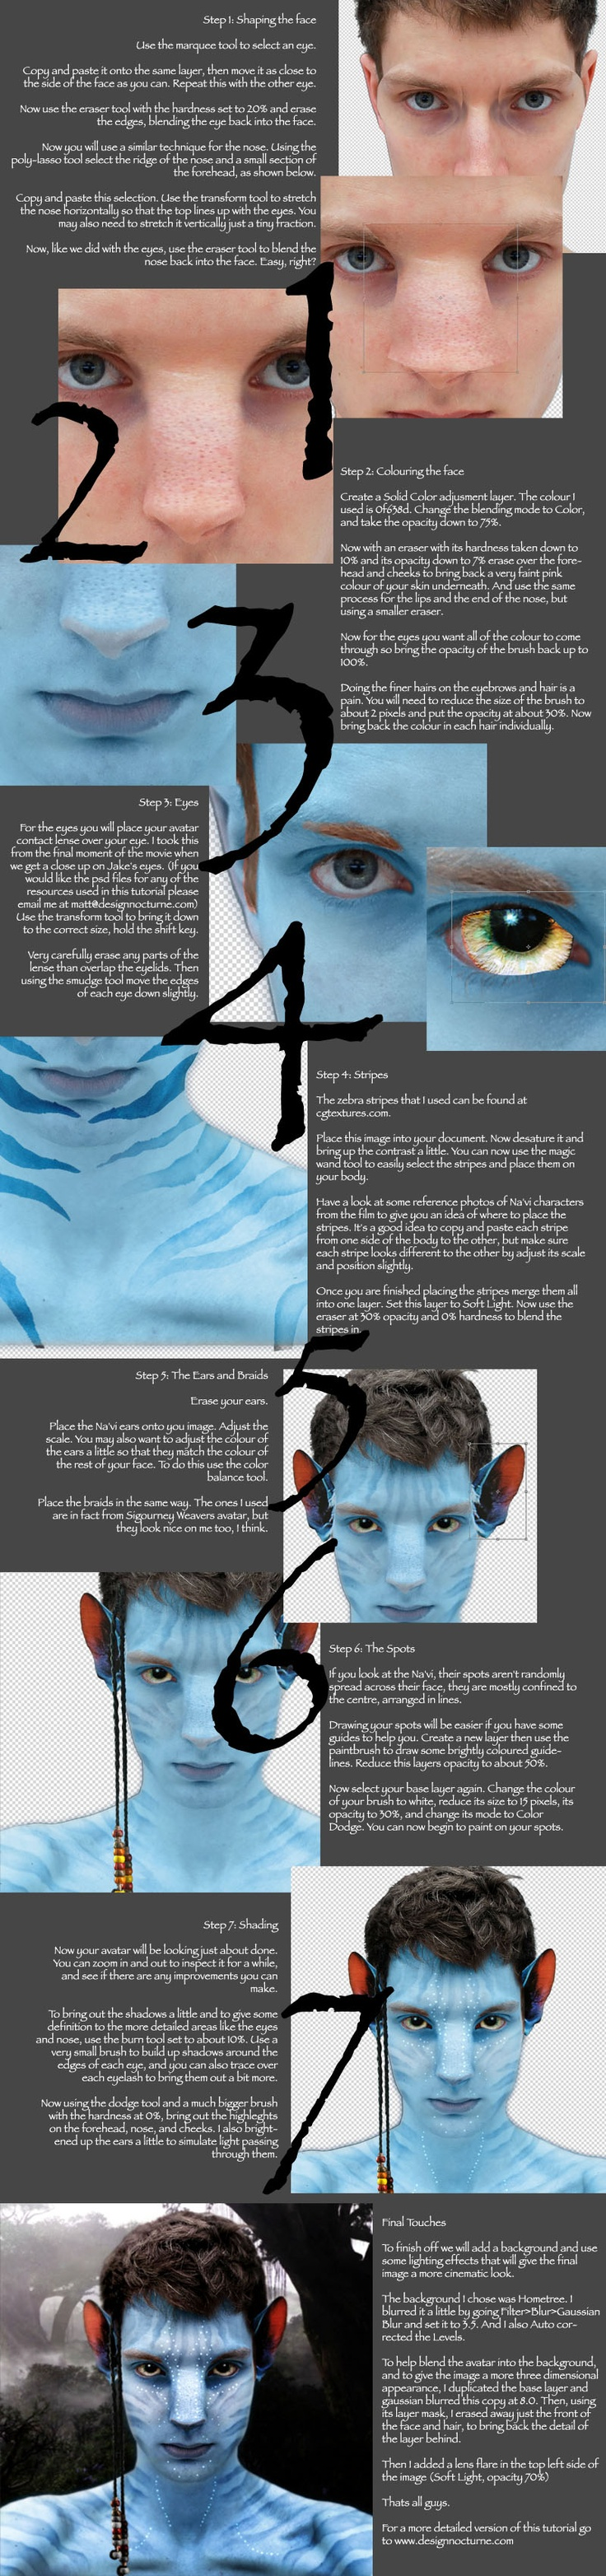 How to make someone an Avatar